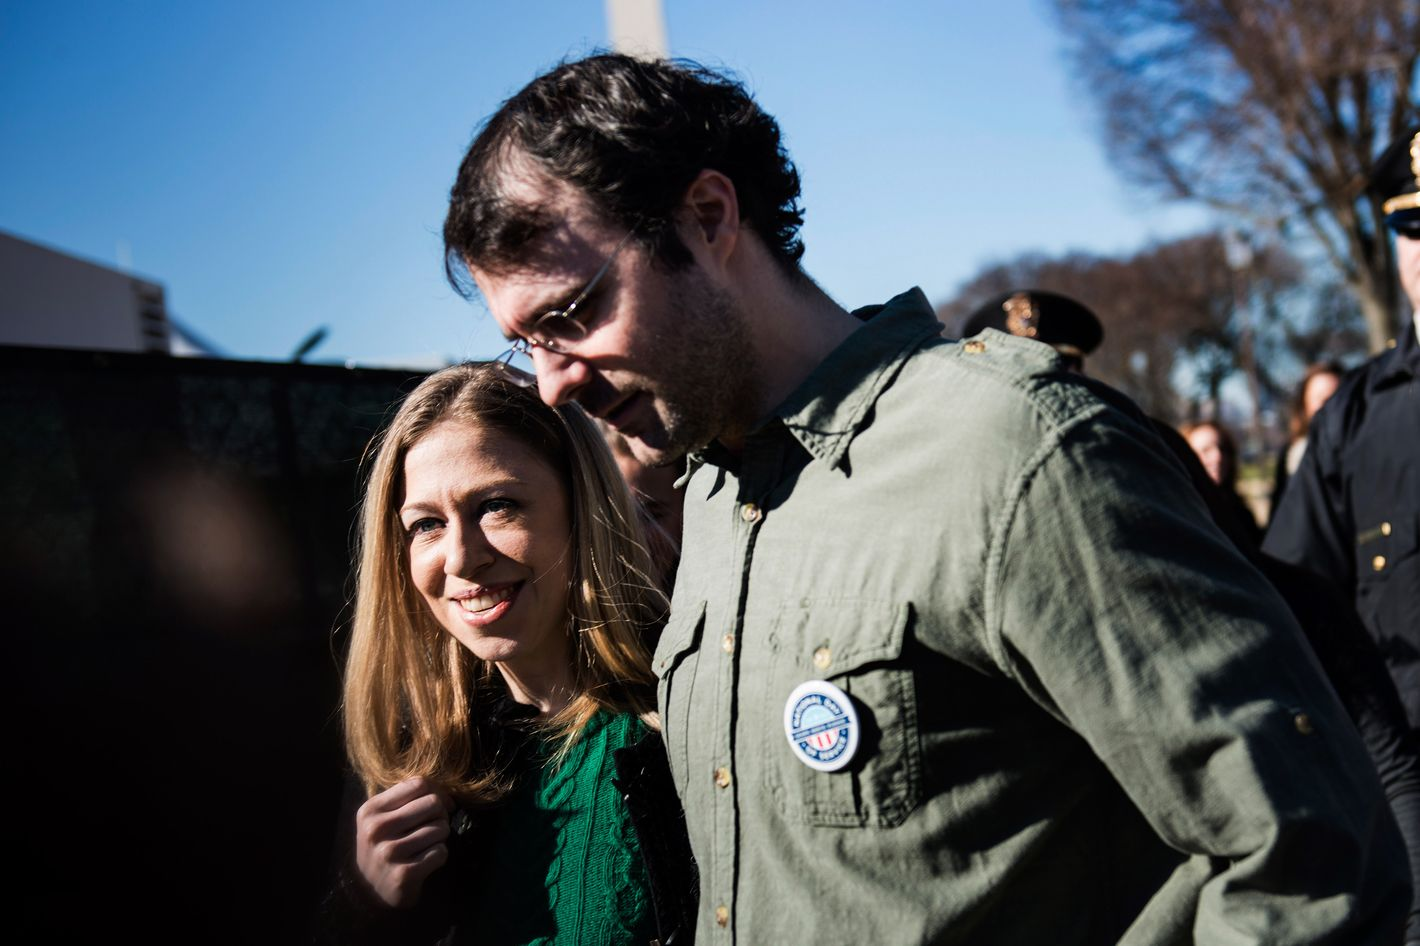 Chelsea Clinton and her husband Marc Mezvinsky walk on the National Mall January 19, 2013 in Washington, DC.